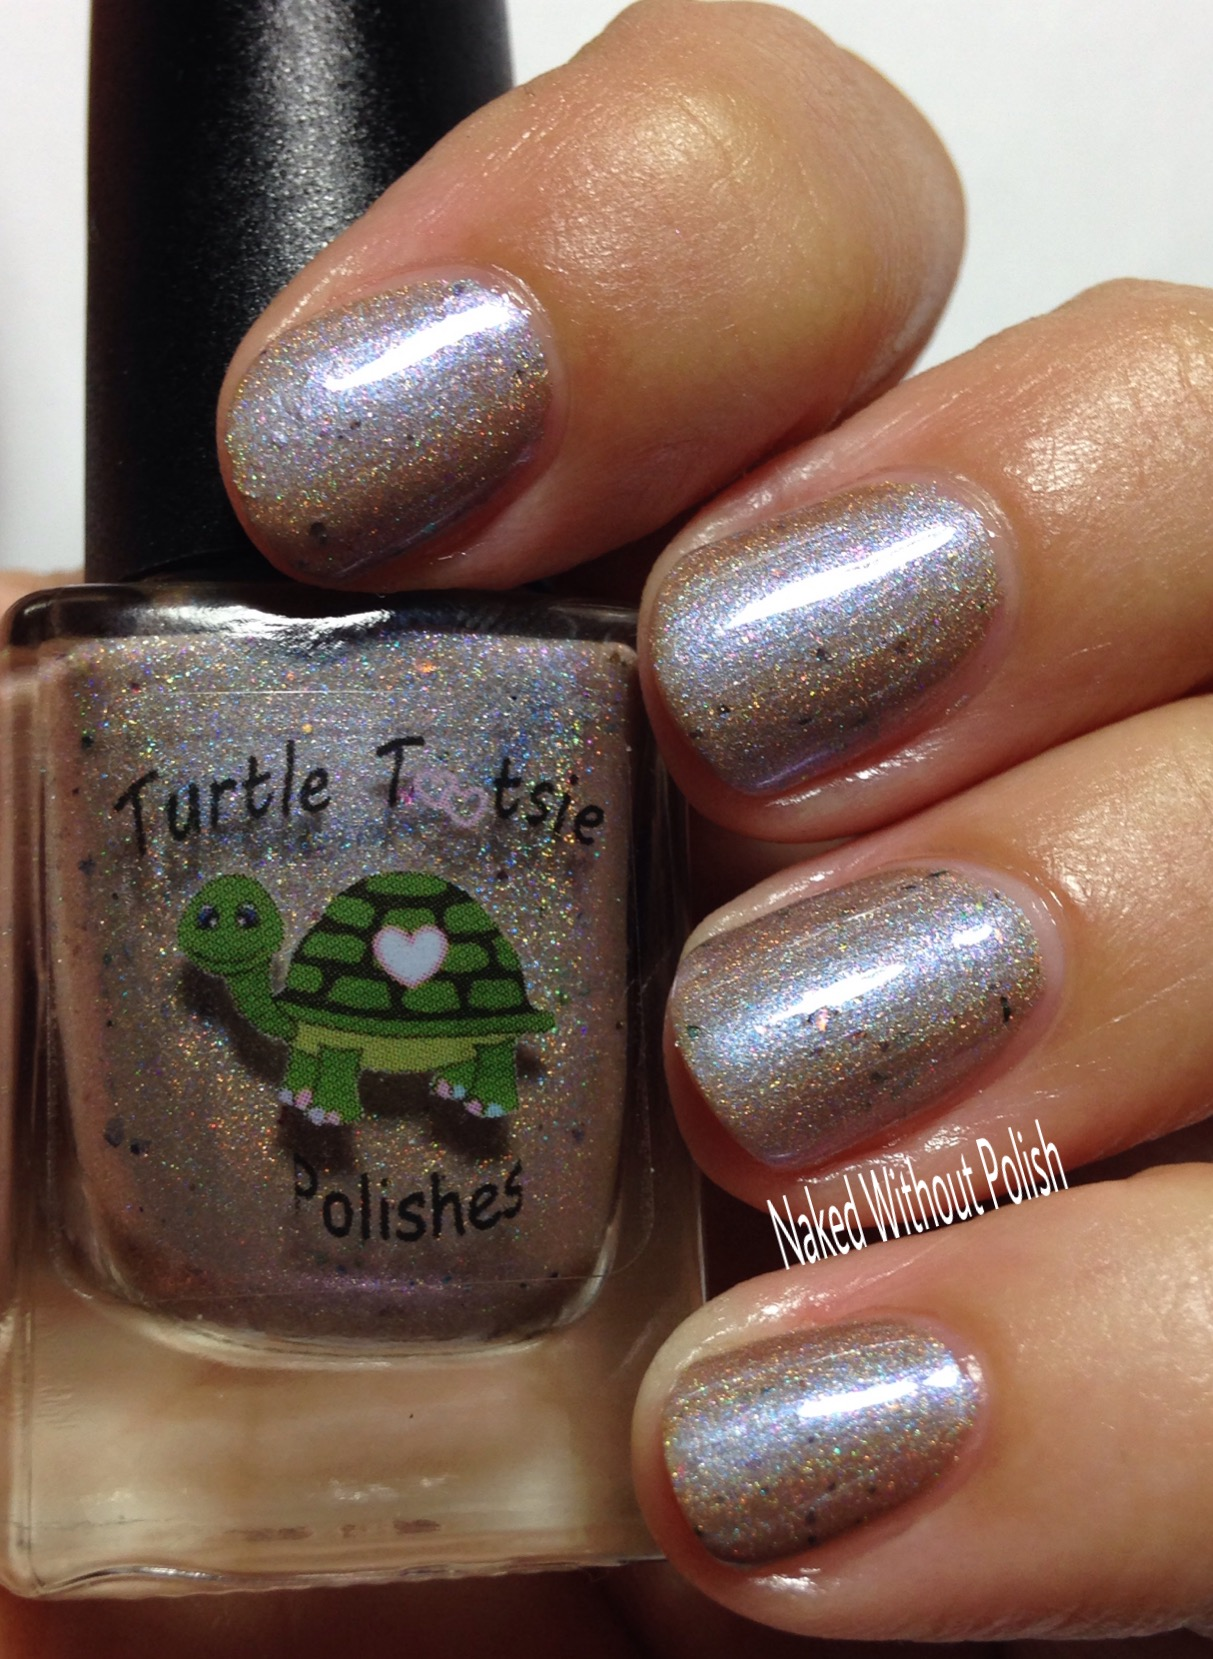 Turtle-Tootsie-Polishes-Makin-Fun-of-Me-Riz-11